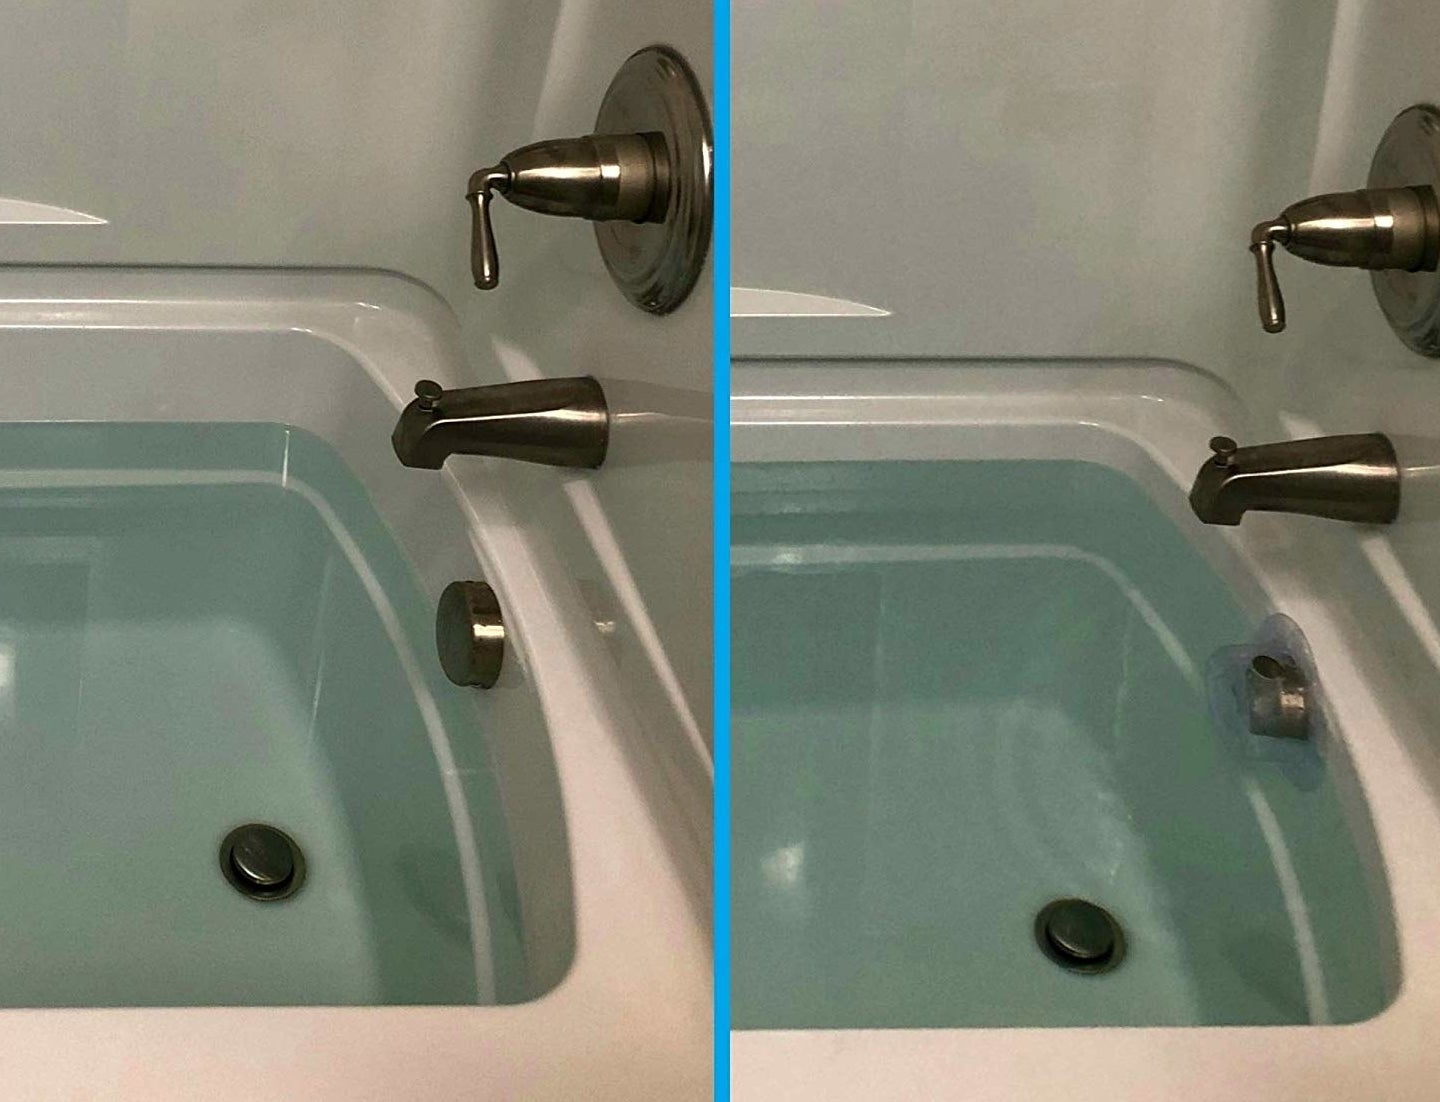 A before image showing the extent to which the tub can fill without the product and an after image showing an additional 3-4 inches of water in the tub with the product